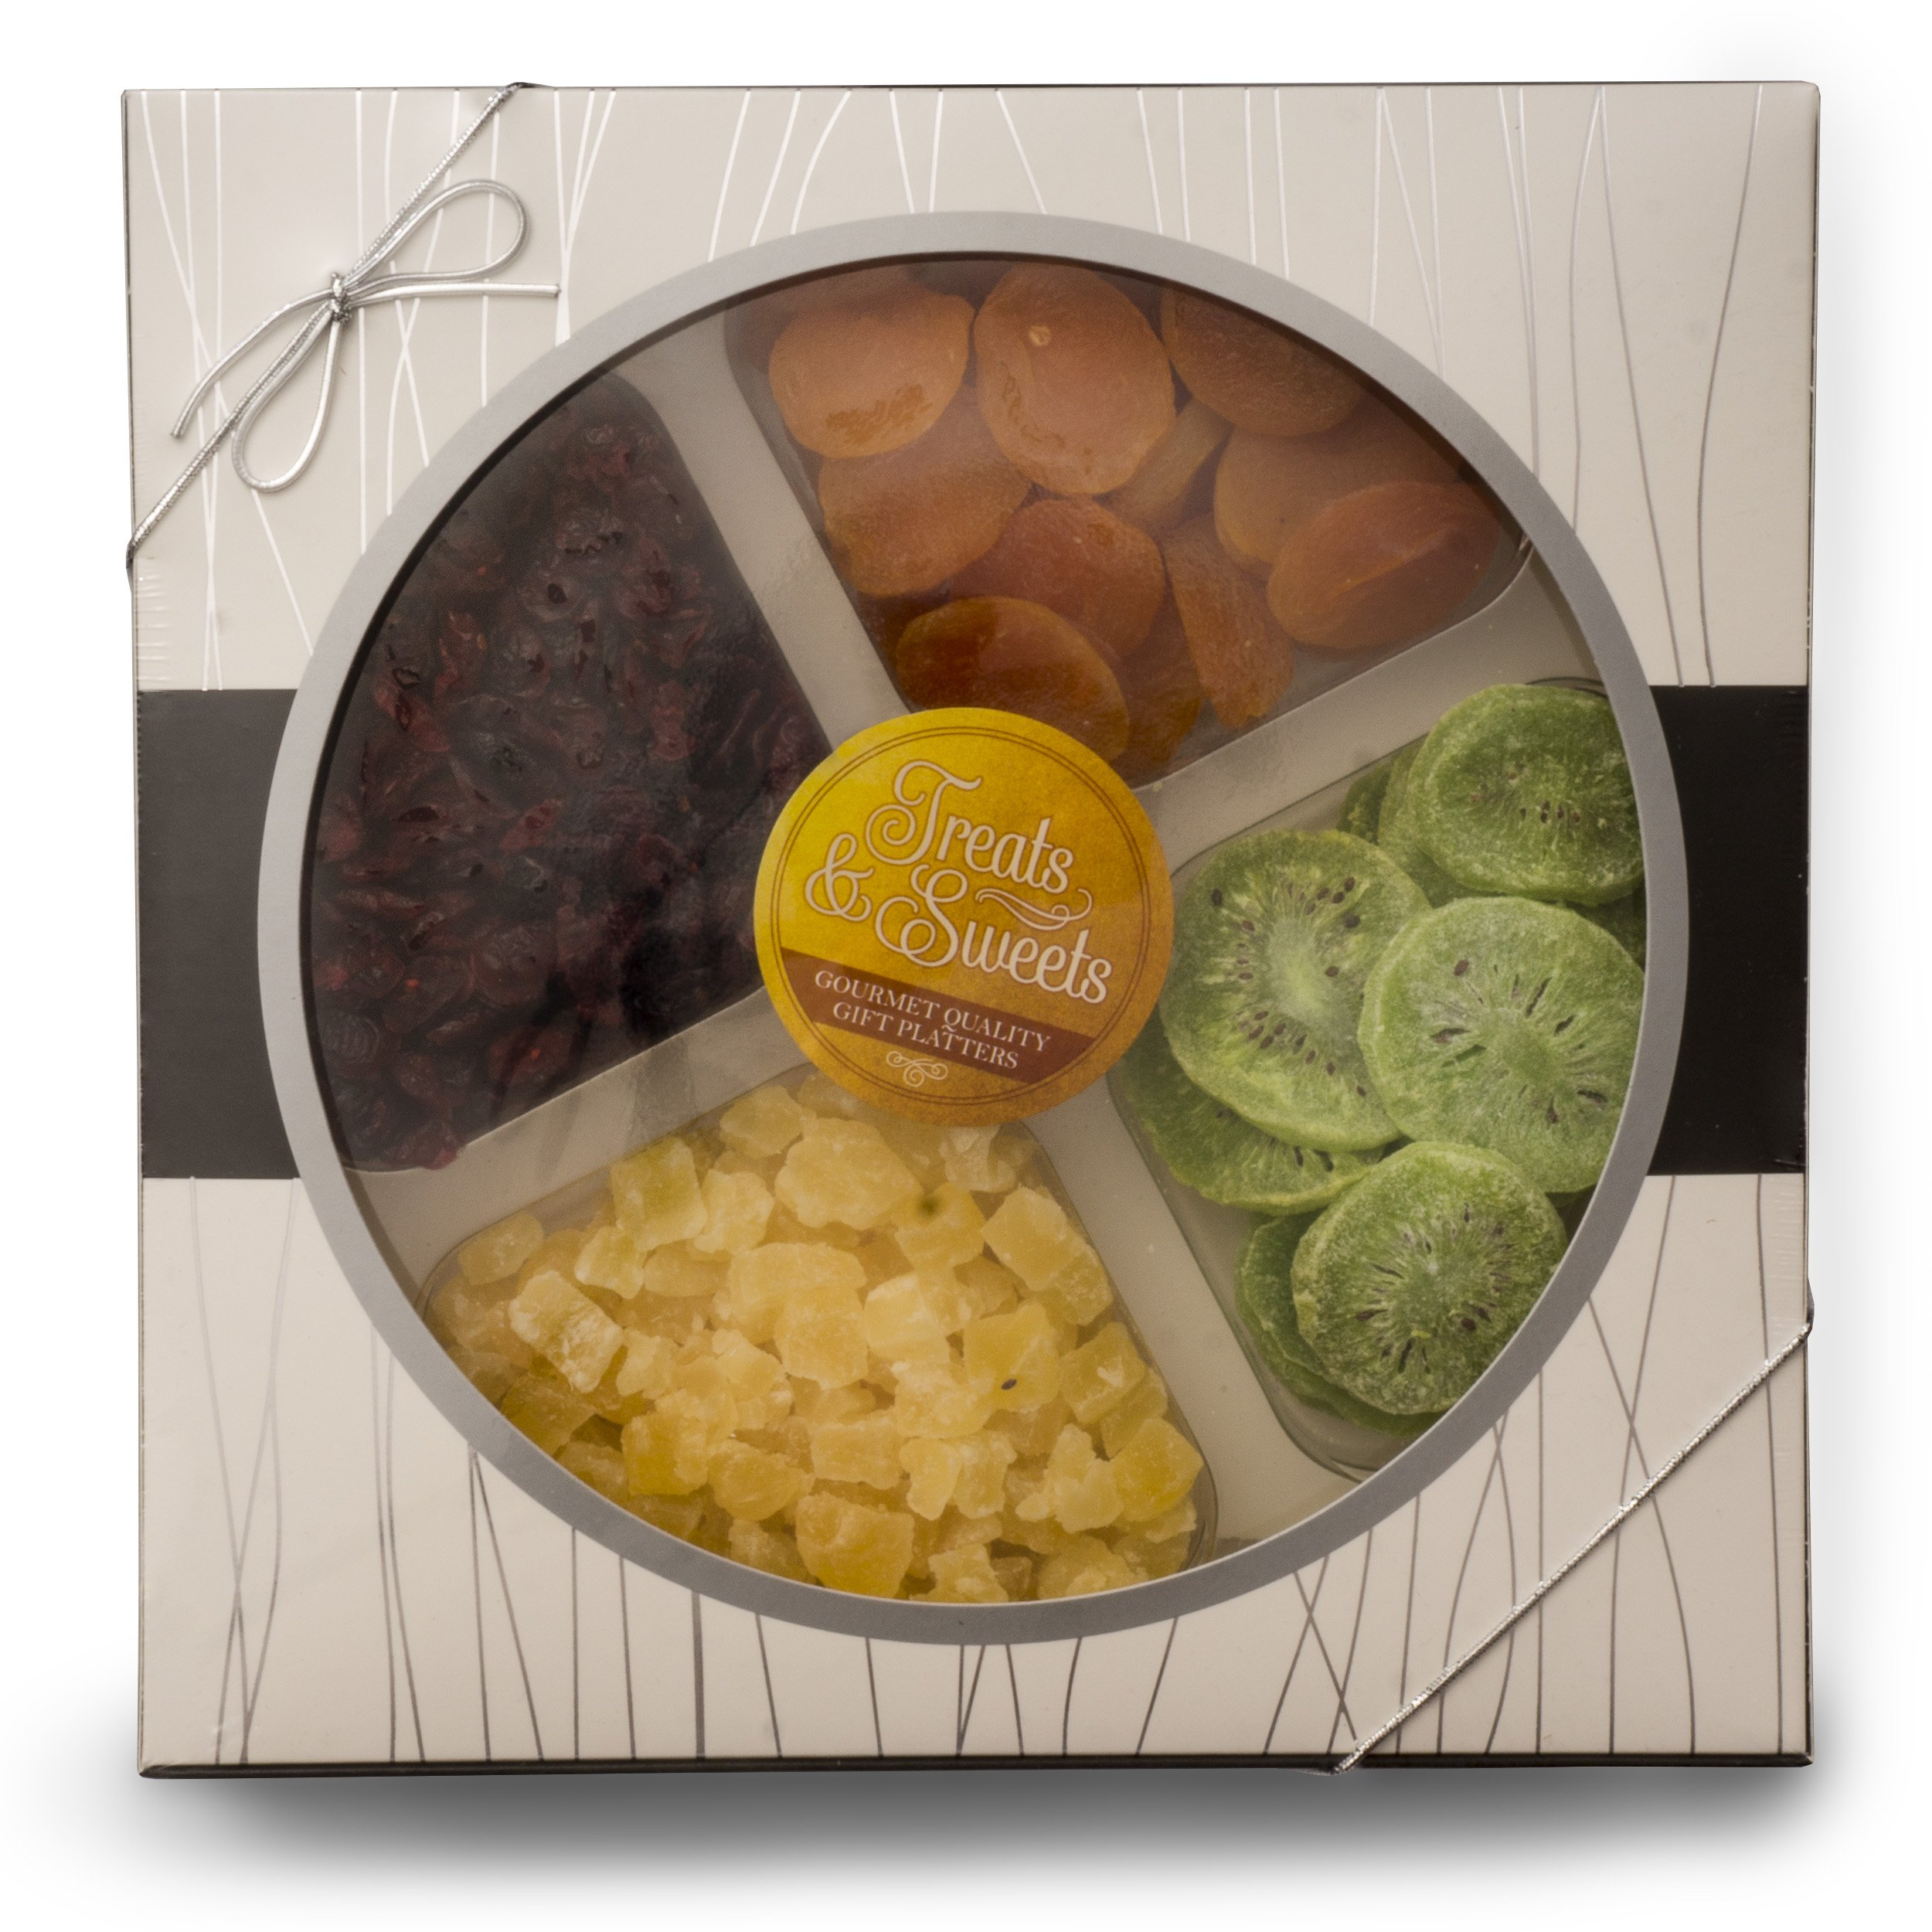 Fruit Basket Gourmet Deluxe, Classic Dried Fruit Platter Apricots, Pineapple, Dried Cranberries, Kiwi, Kosher, Beautiful Box W/ Silver Ribbon, Healthy Food Party Tray